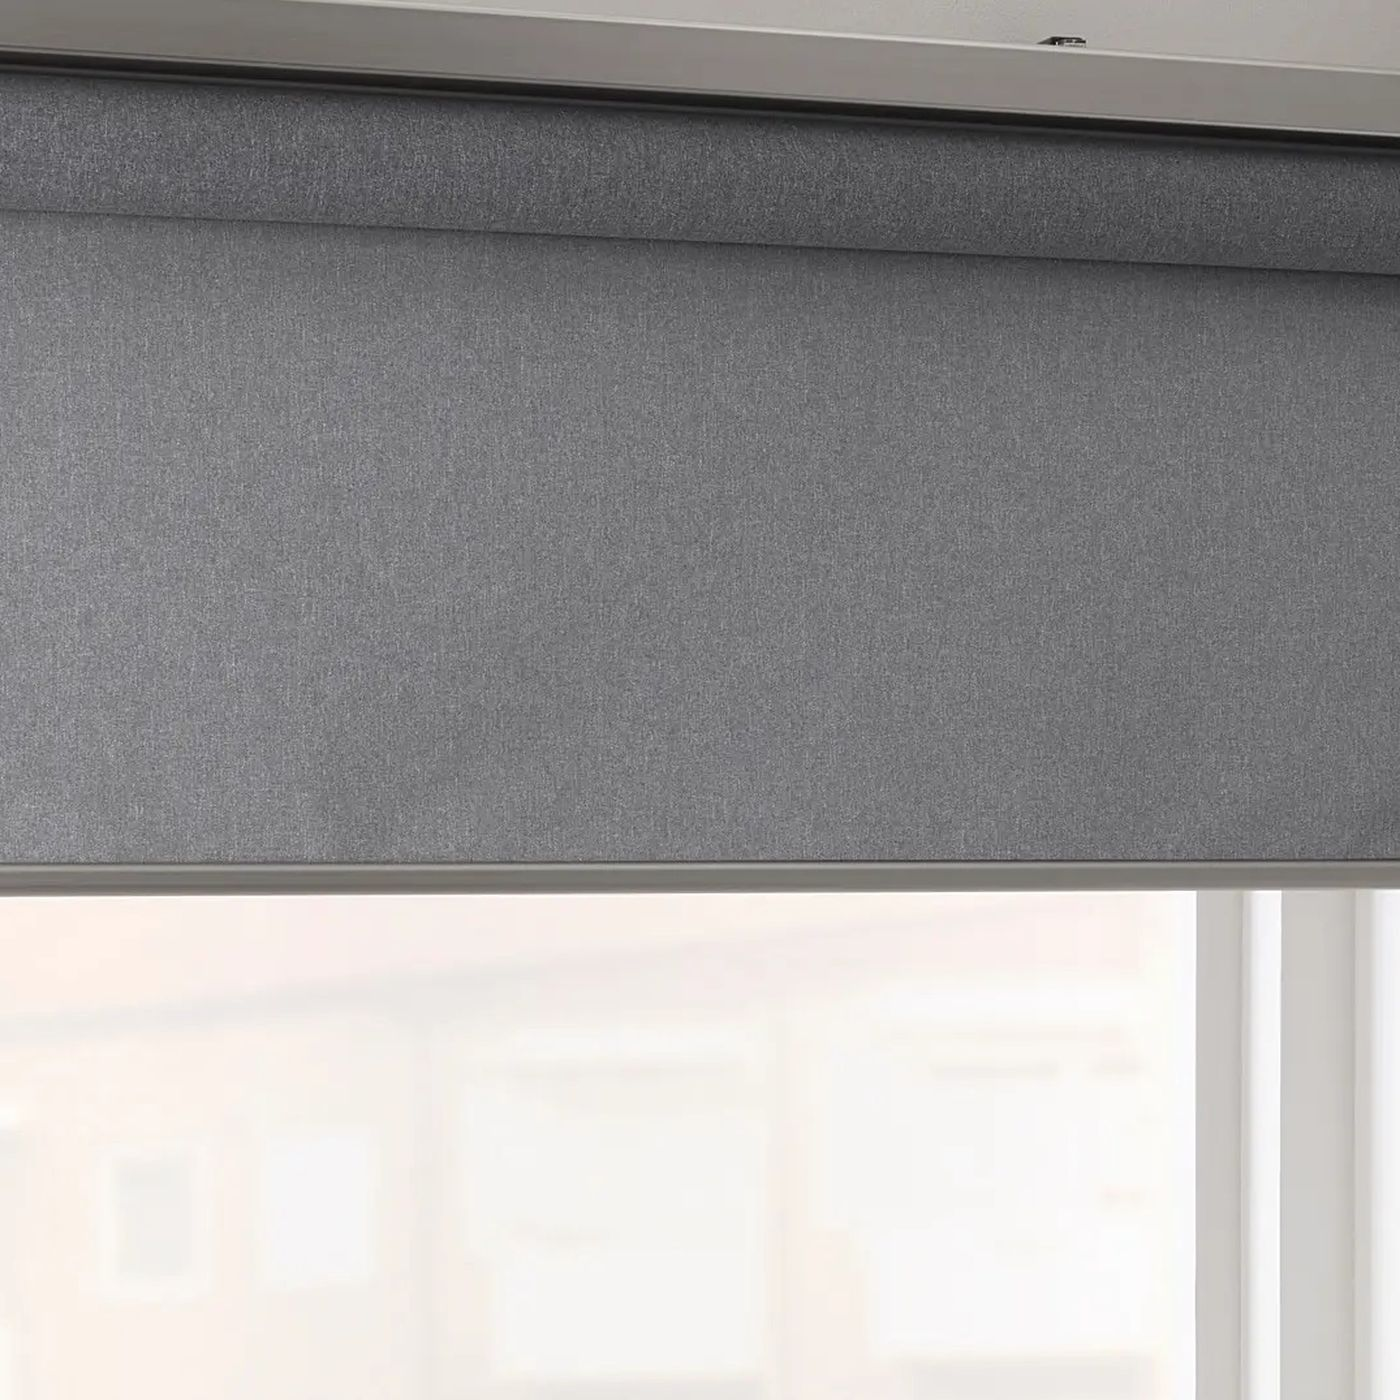 Ikea's smart blinds have been delayed to later in 2019 - The